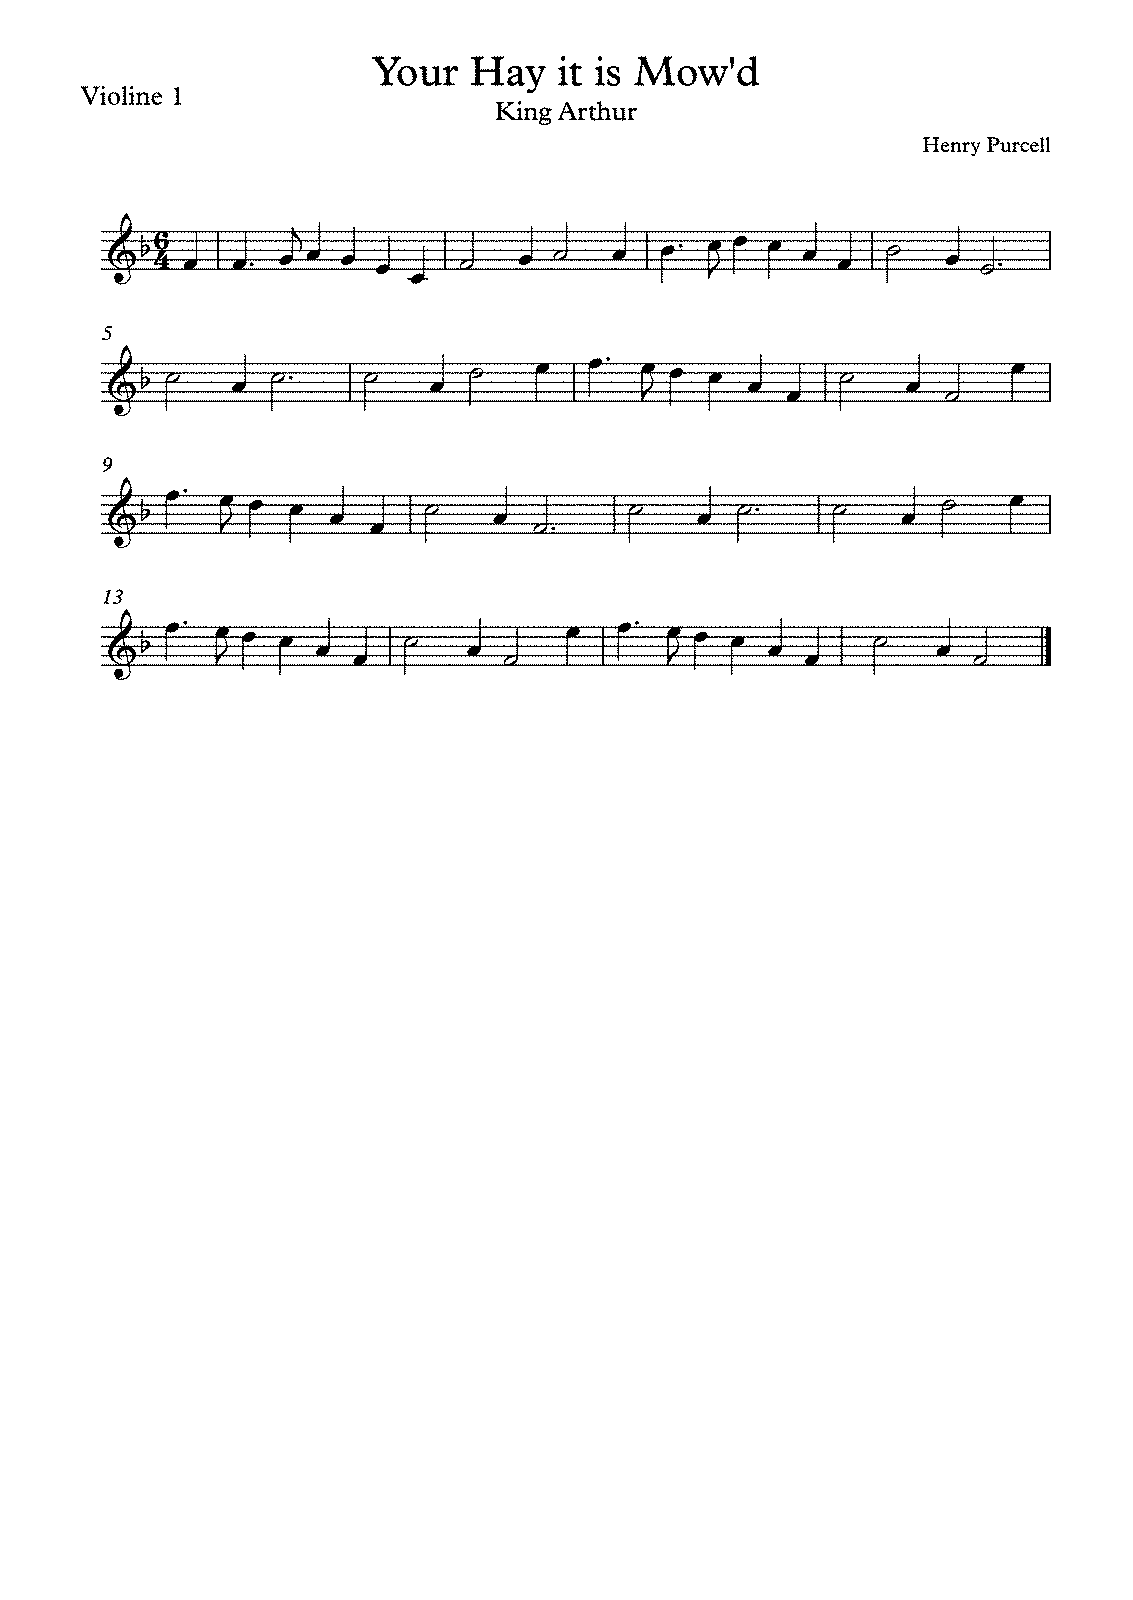 PMLP69503-Purcell - Your Hay it is Mow'd - Violine 1.pdf